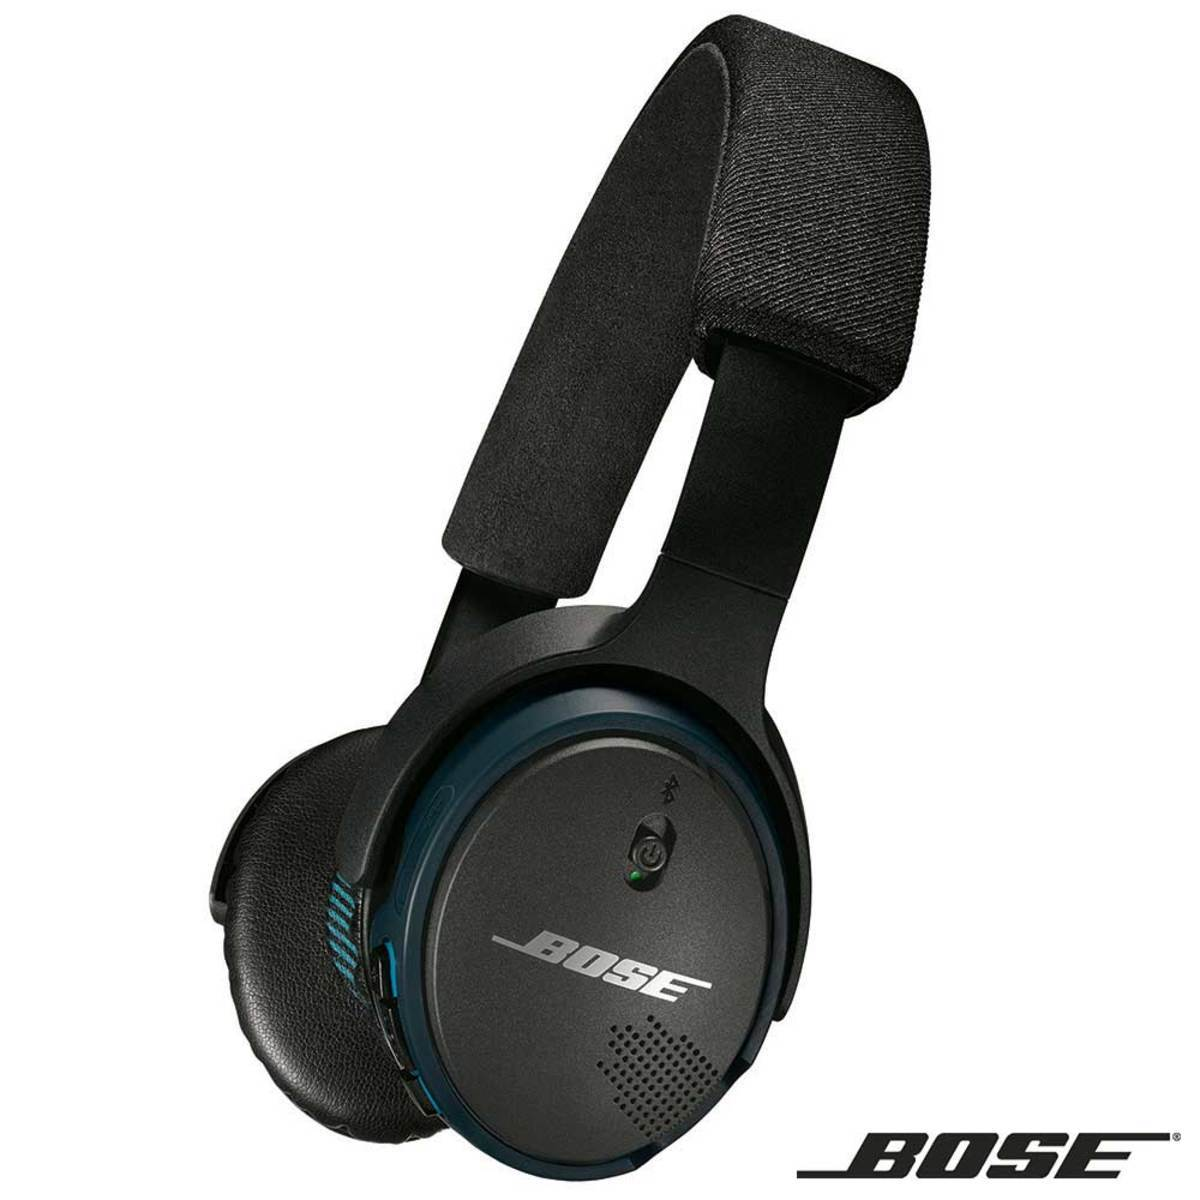 hight resolution of bose soundlink on ear bluetooth headphones in black